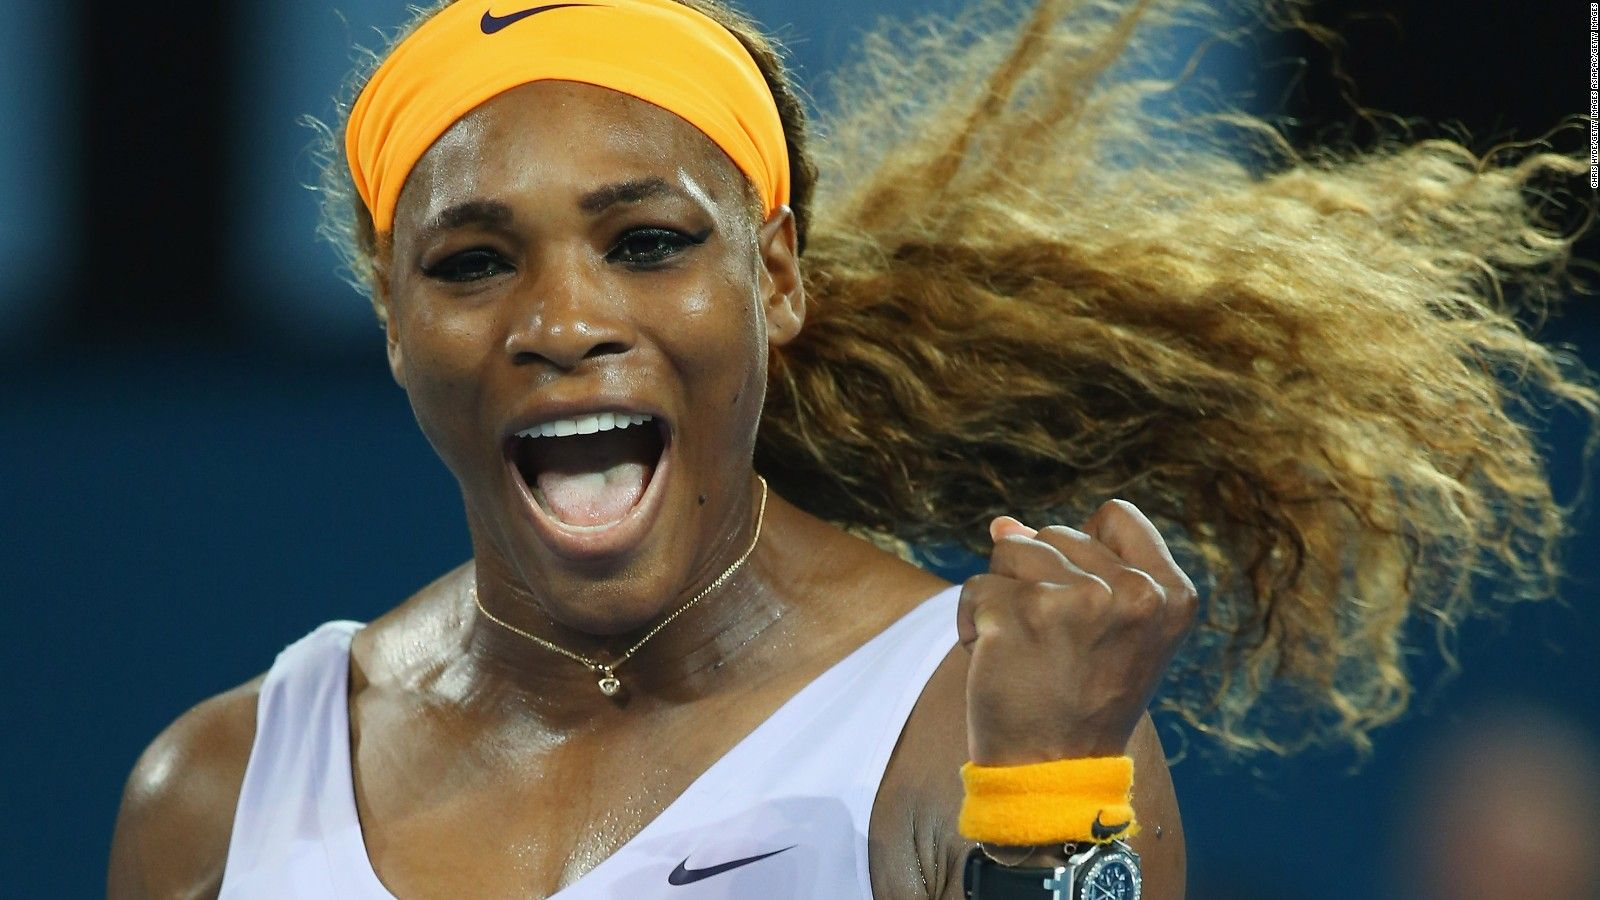 Serena Williams shares newborn daughter with the world | Teenzone